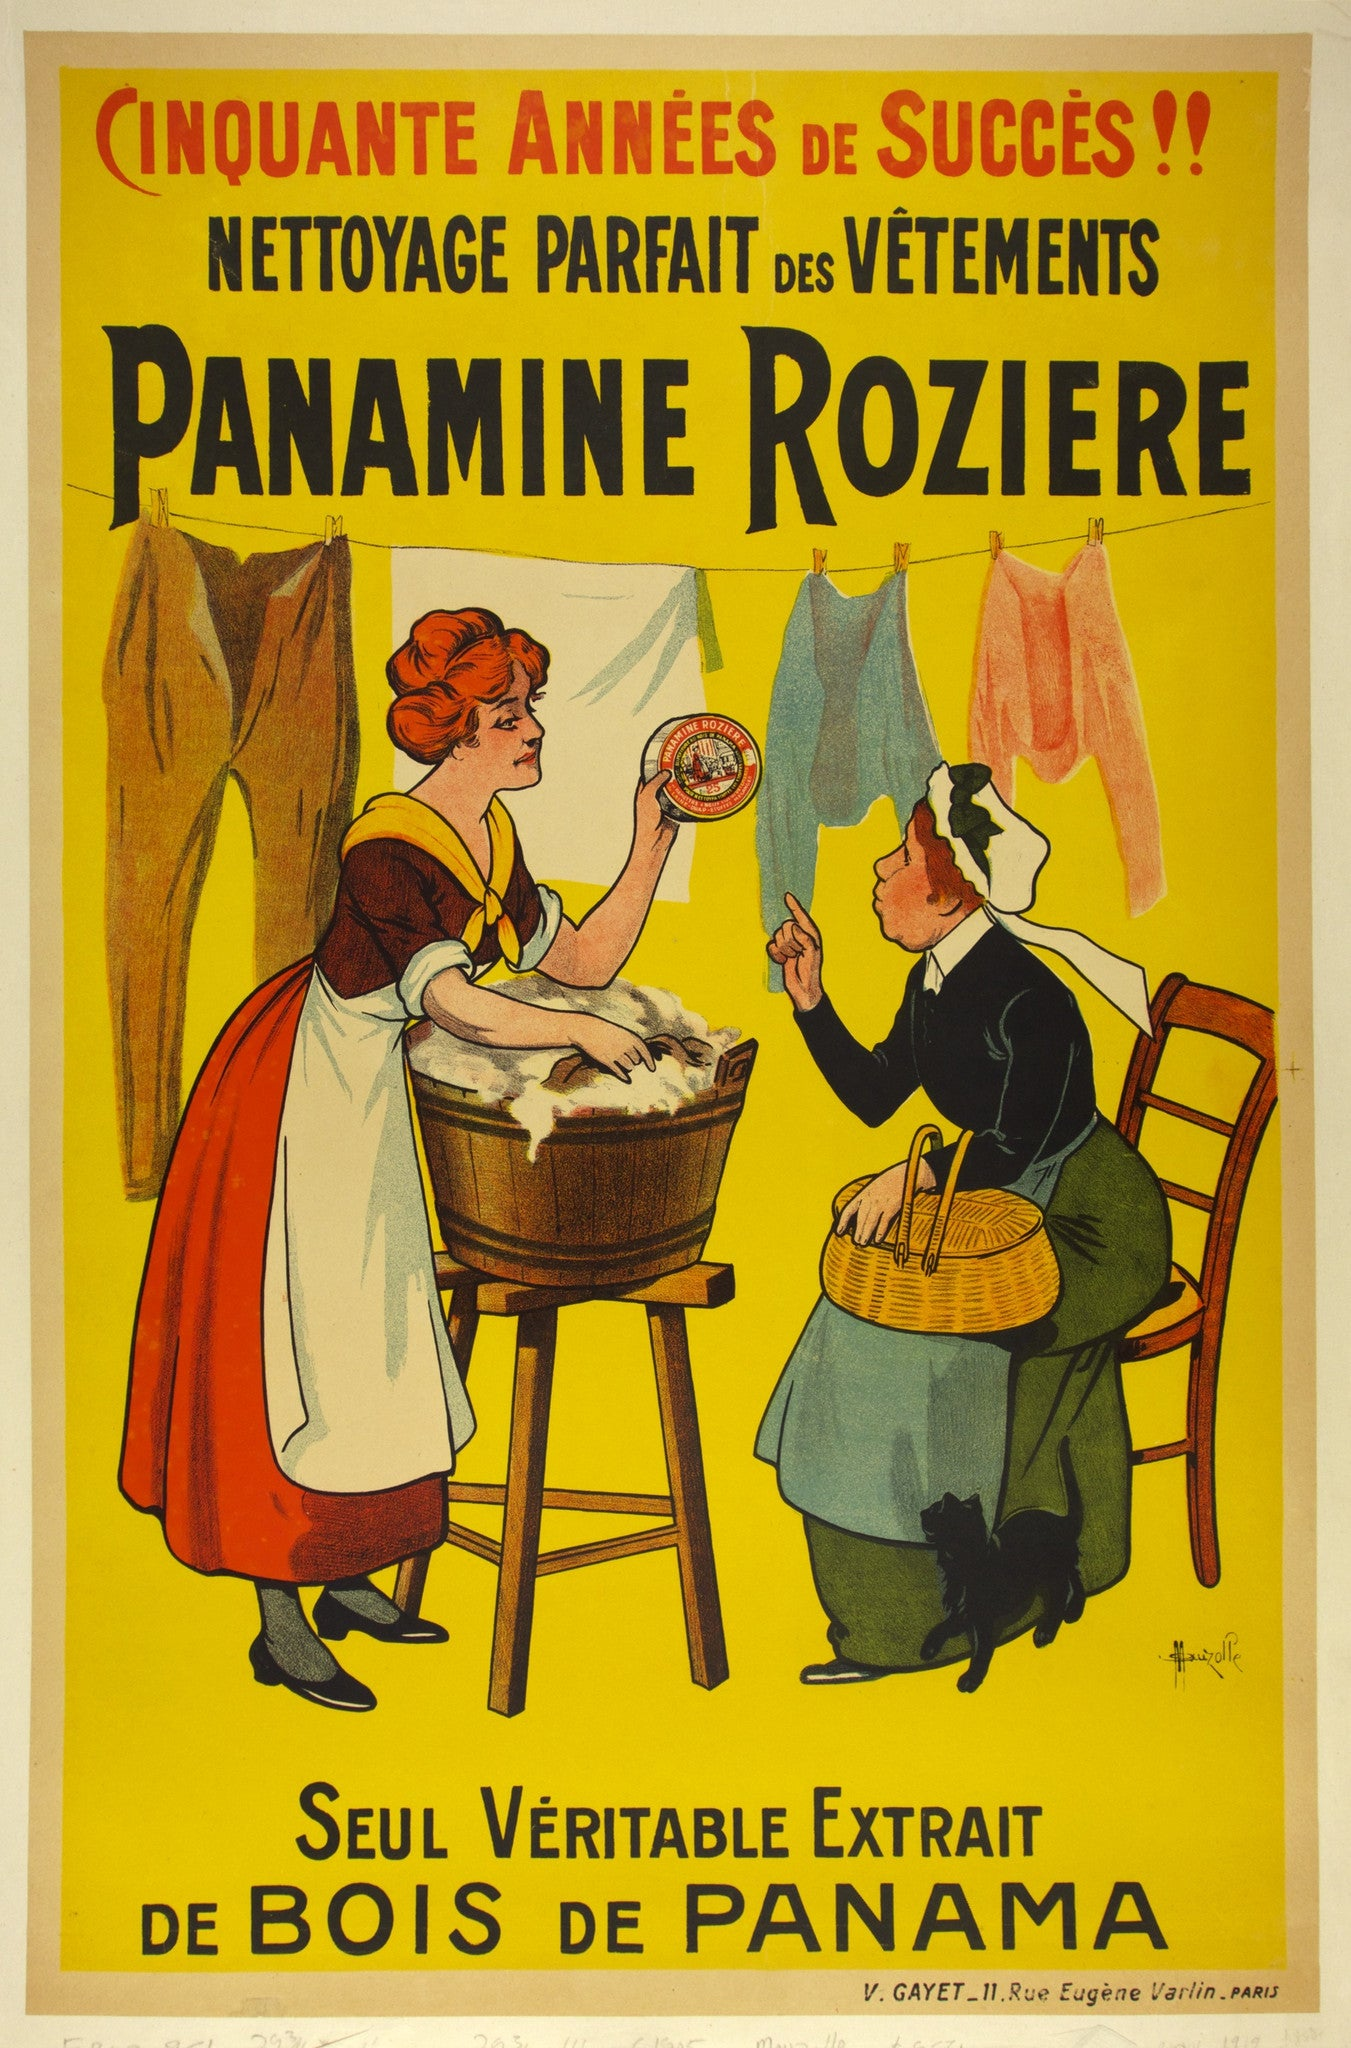 Panamine Roziere